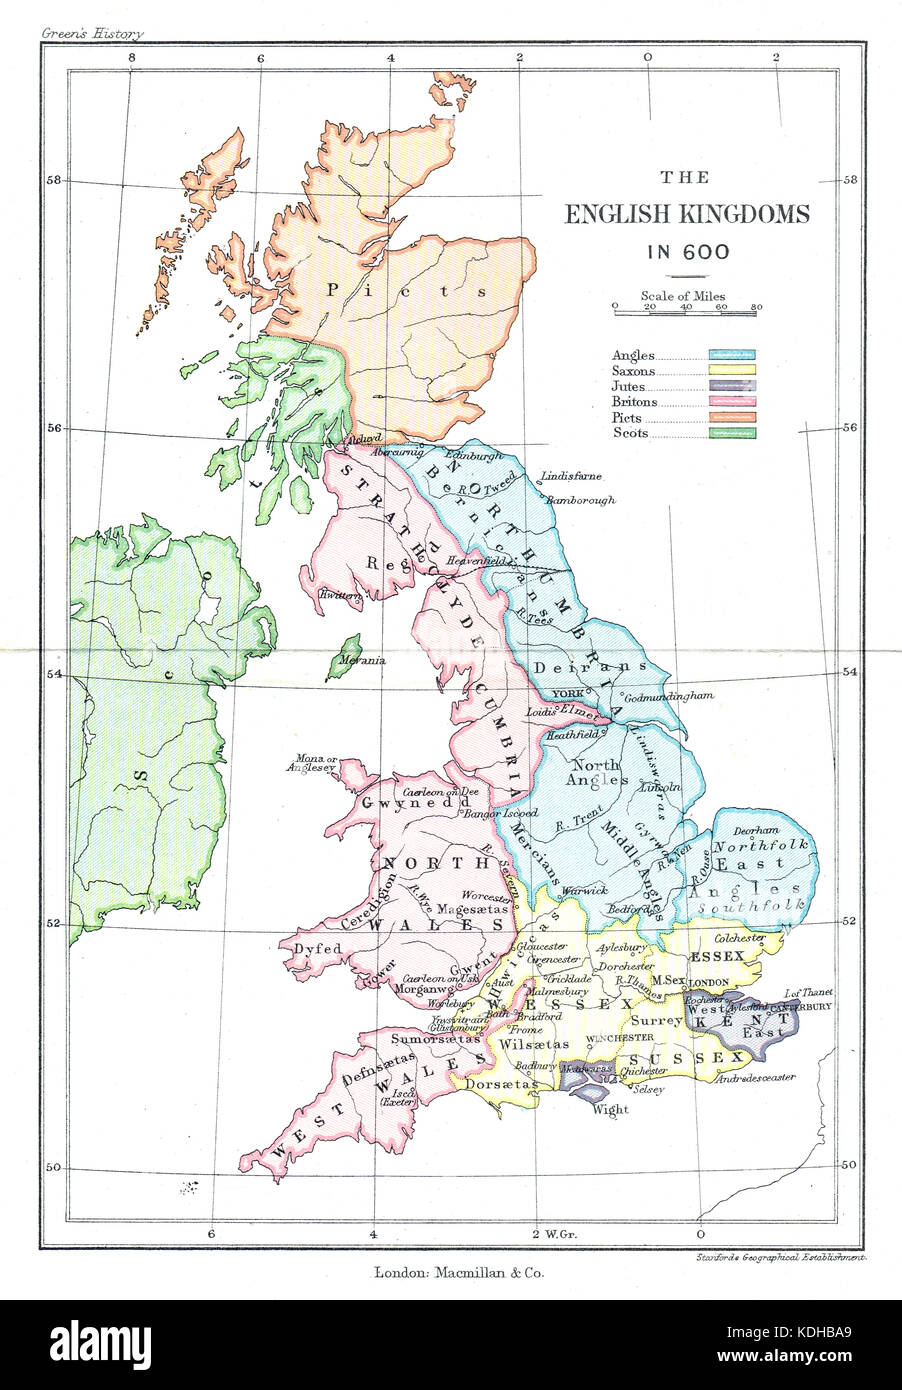 Map of the English kingdoms in 600 AD - Stock Image